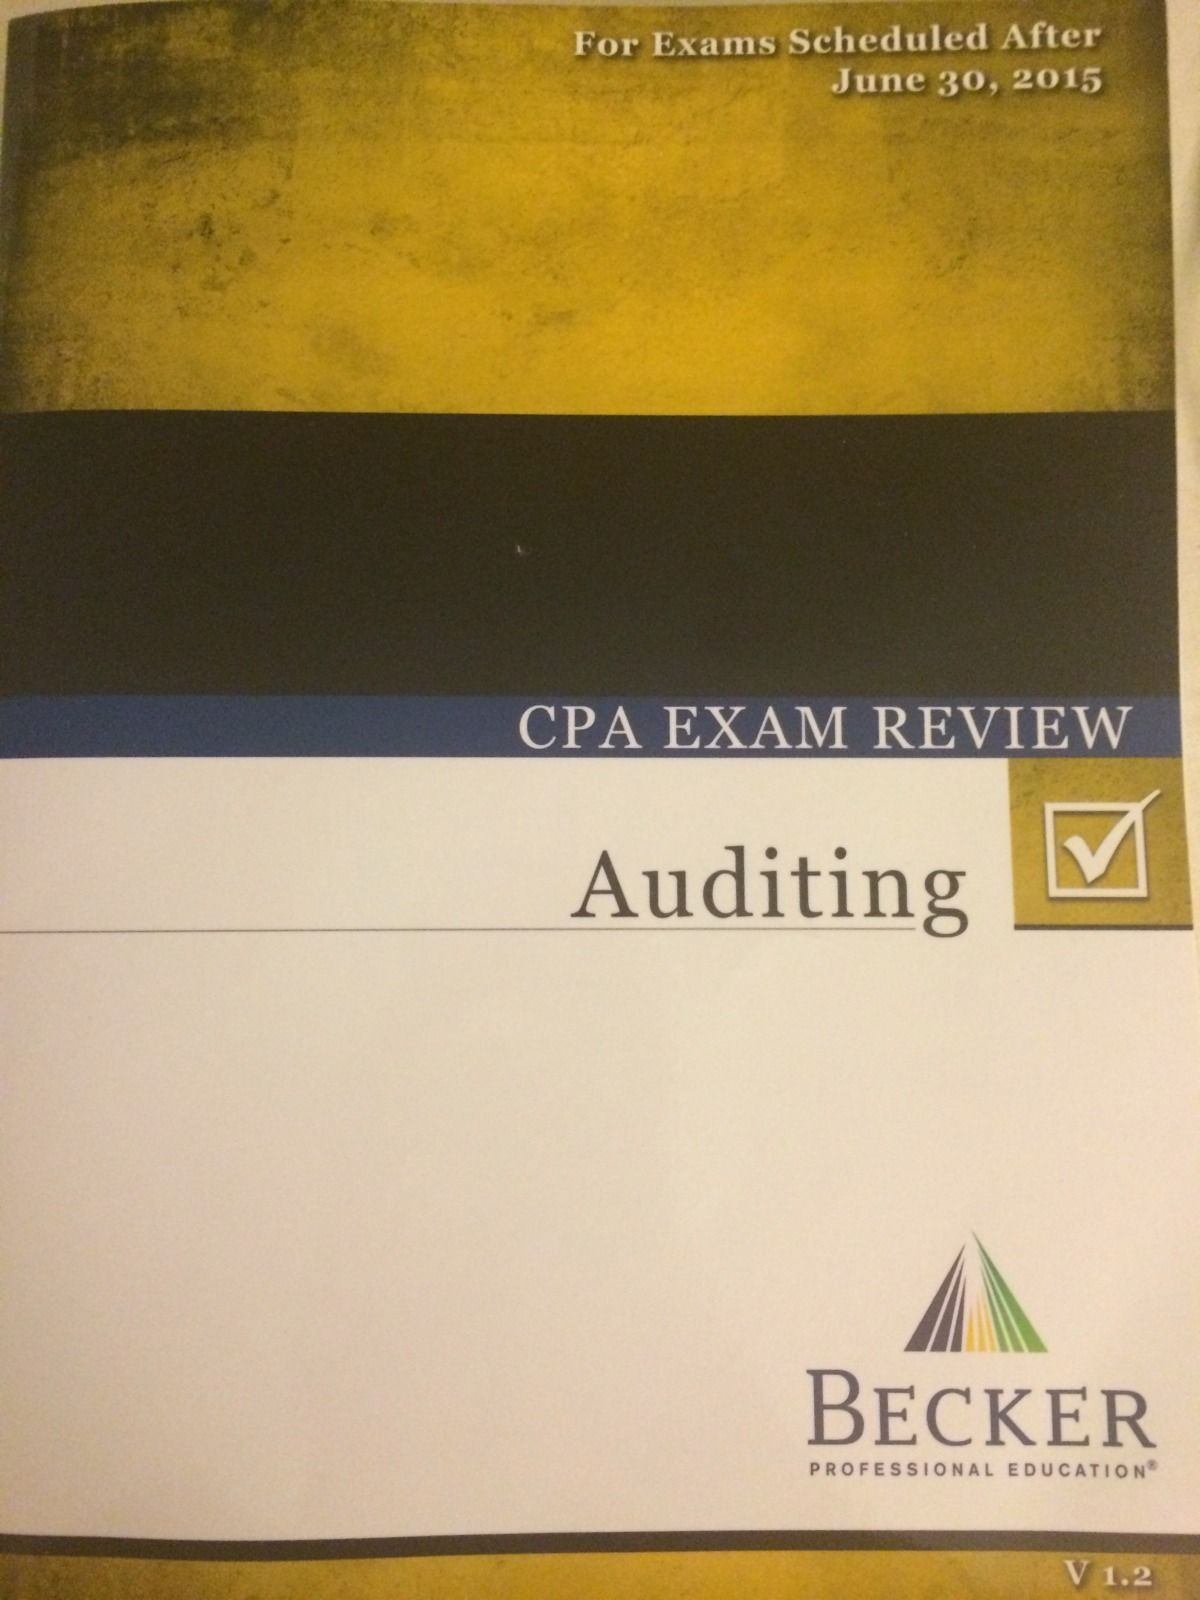 Becker CPA Review - Beat the CPA!